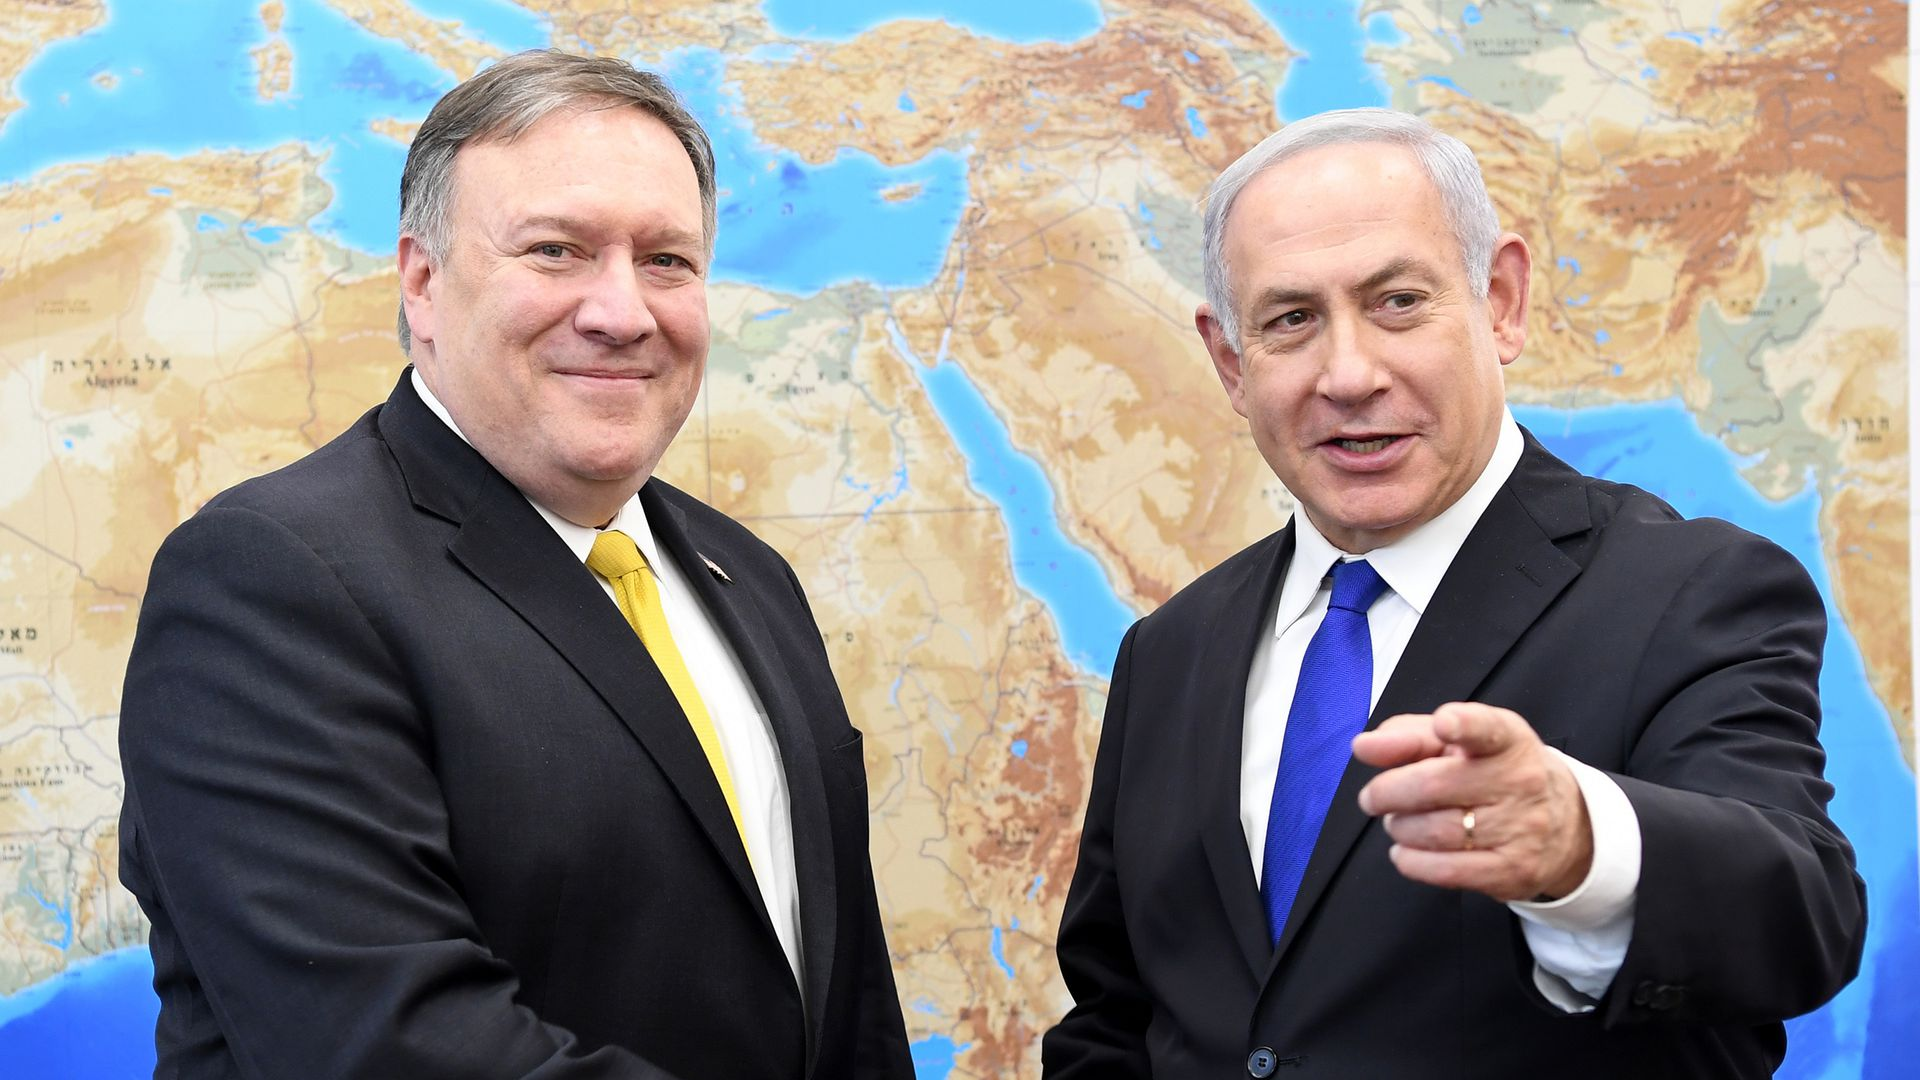 Mike Pompeo and Benjamin Netanyahu